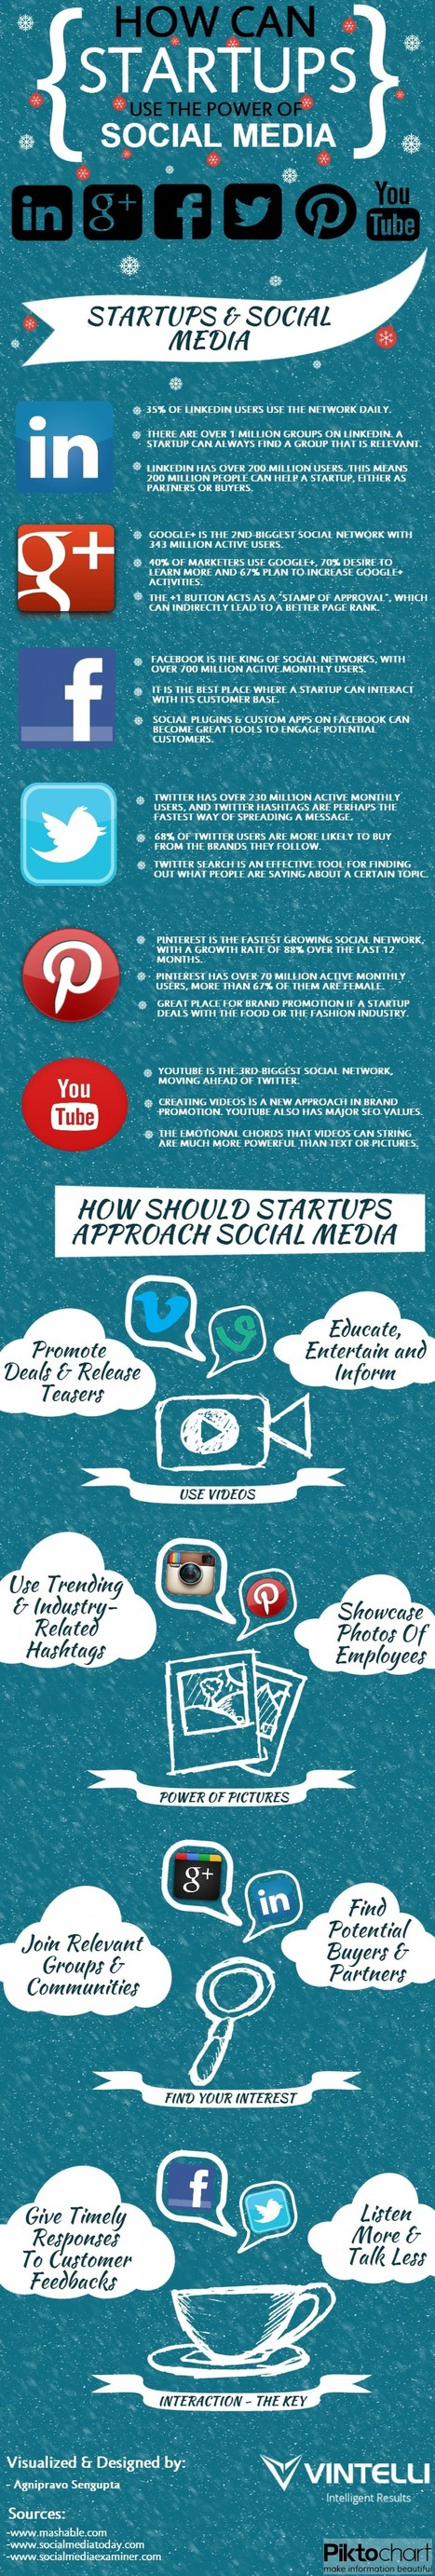 How Startups Can Use Power Of Social Media (Infographic) | Entrepreneurship in the World | Scoop.it